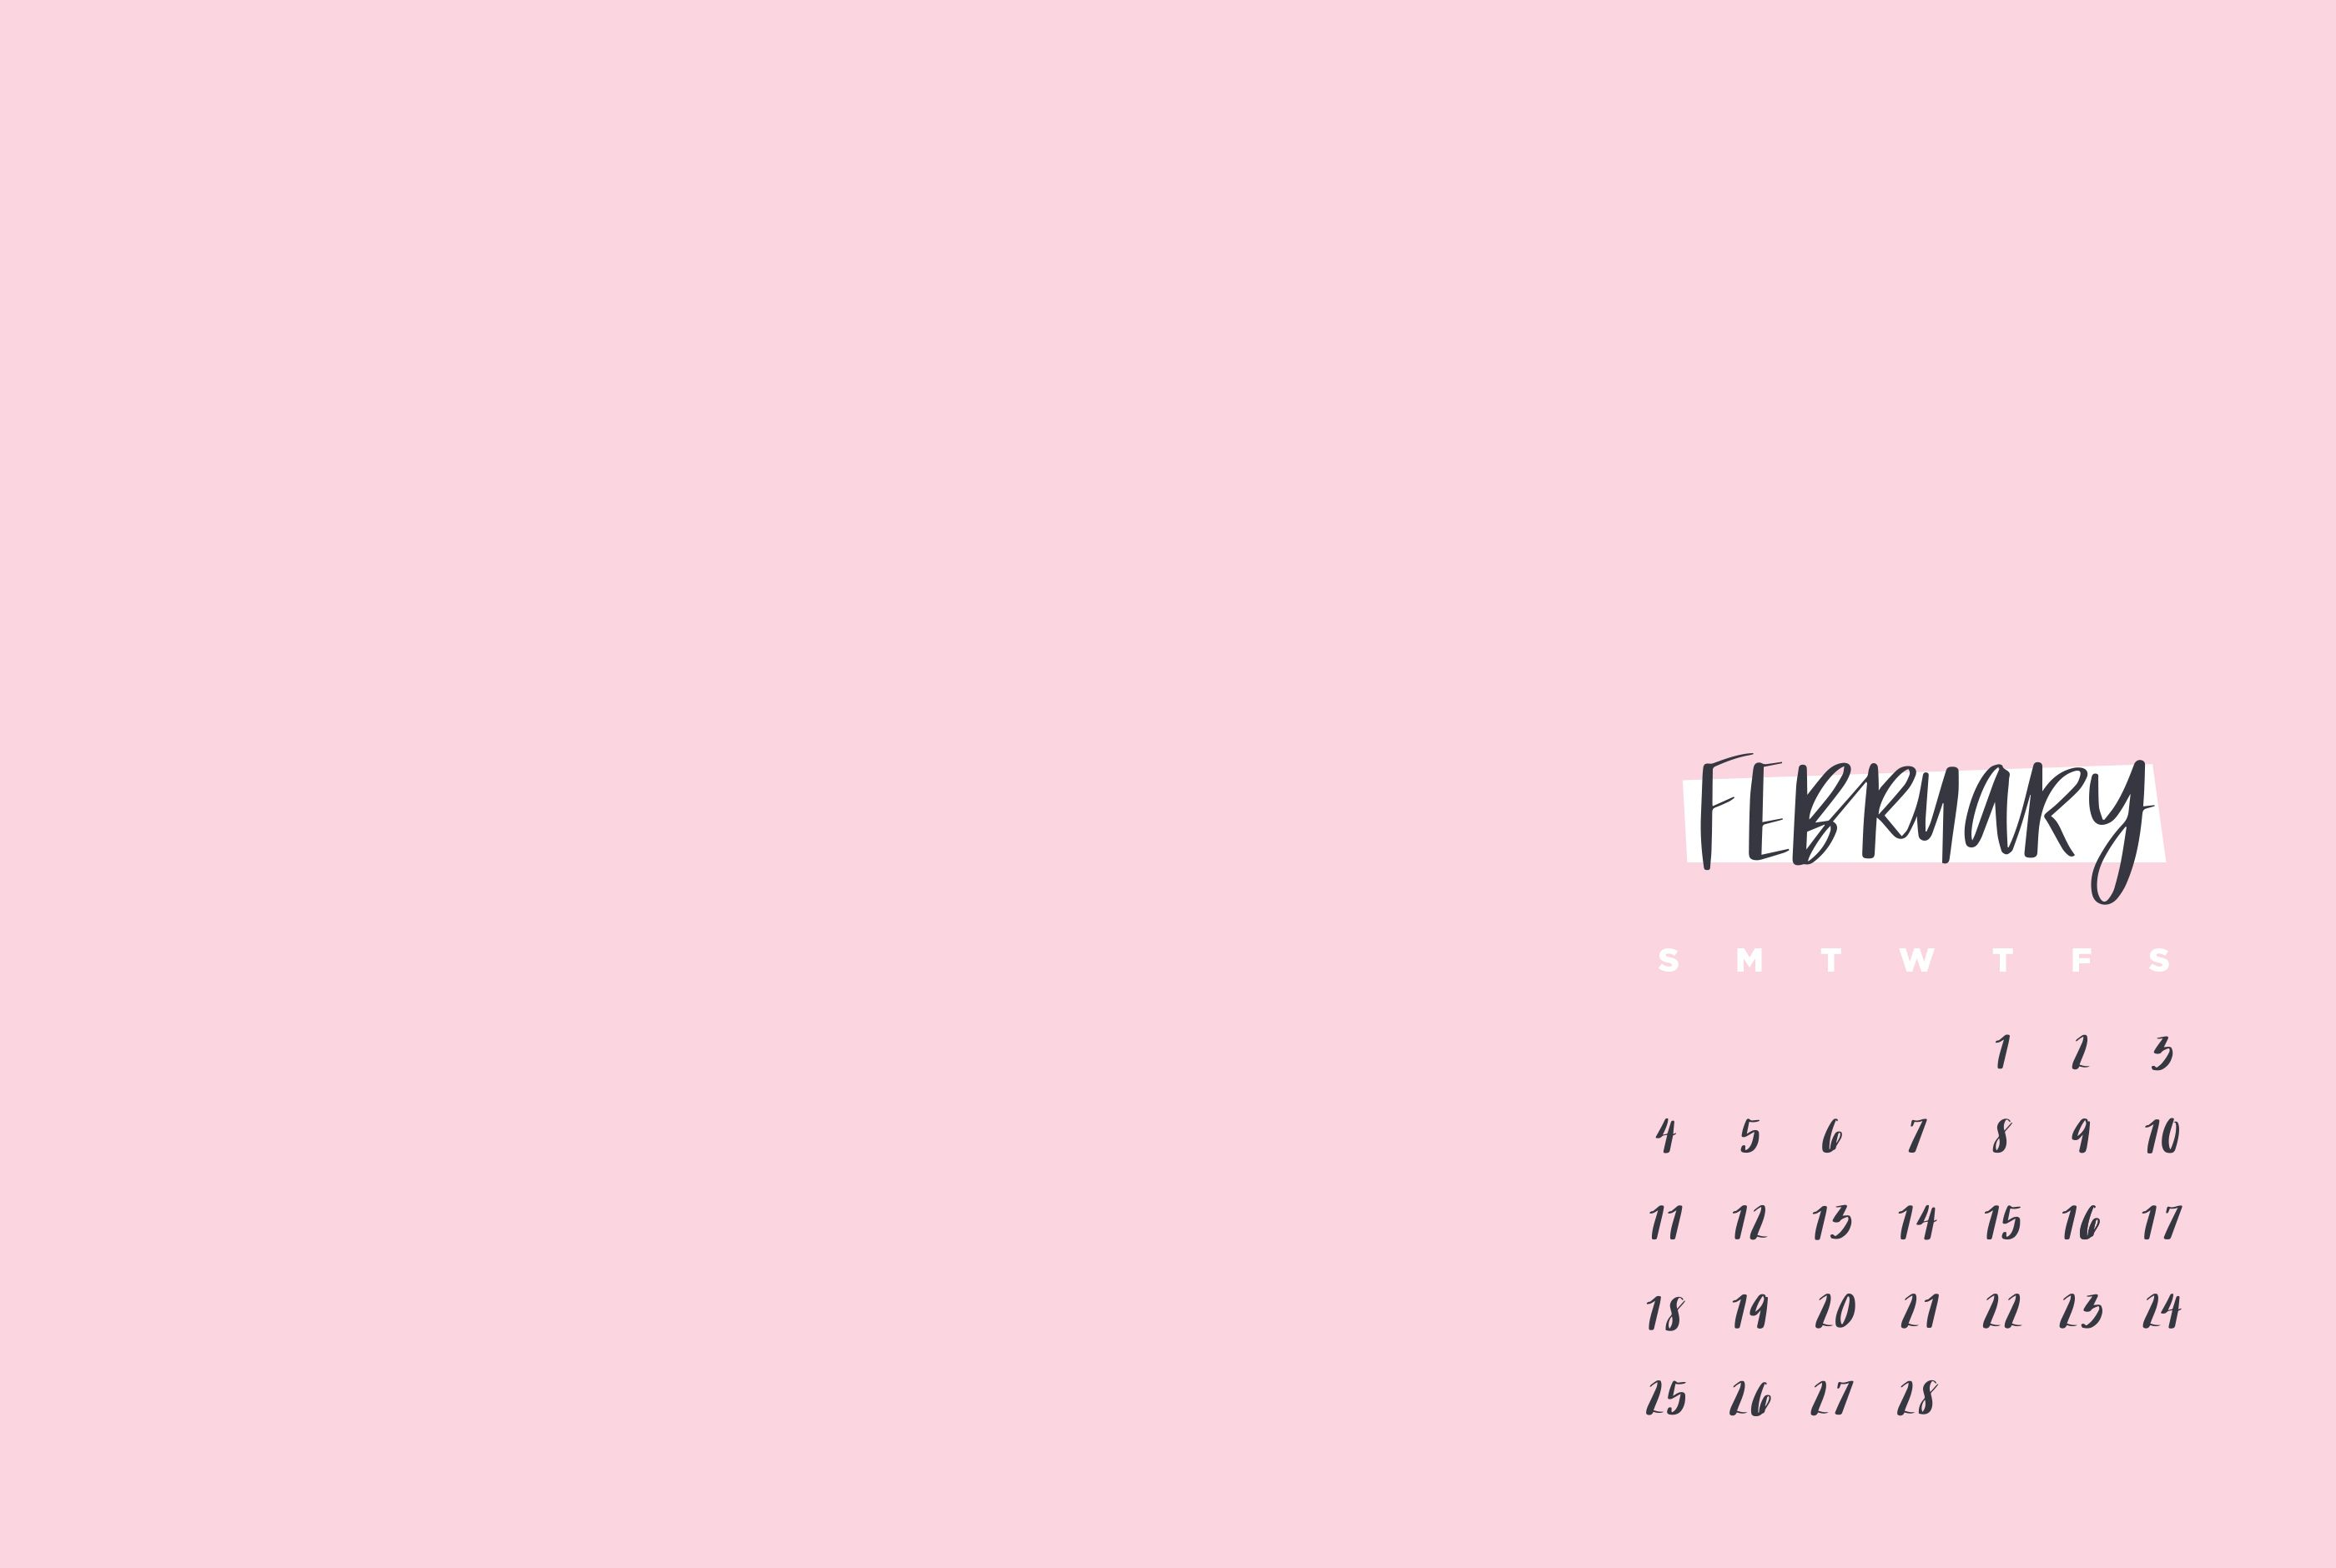 Digital Wallpapers February 2018 May Designs Pink Aesthetic Aesthetic Backgrounds Aesthetic Pastel Wallpaper